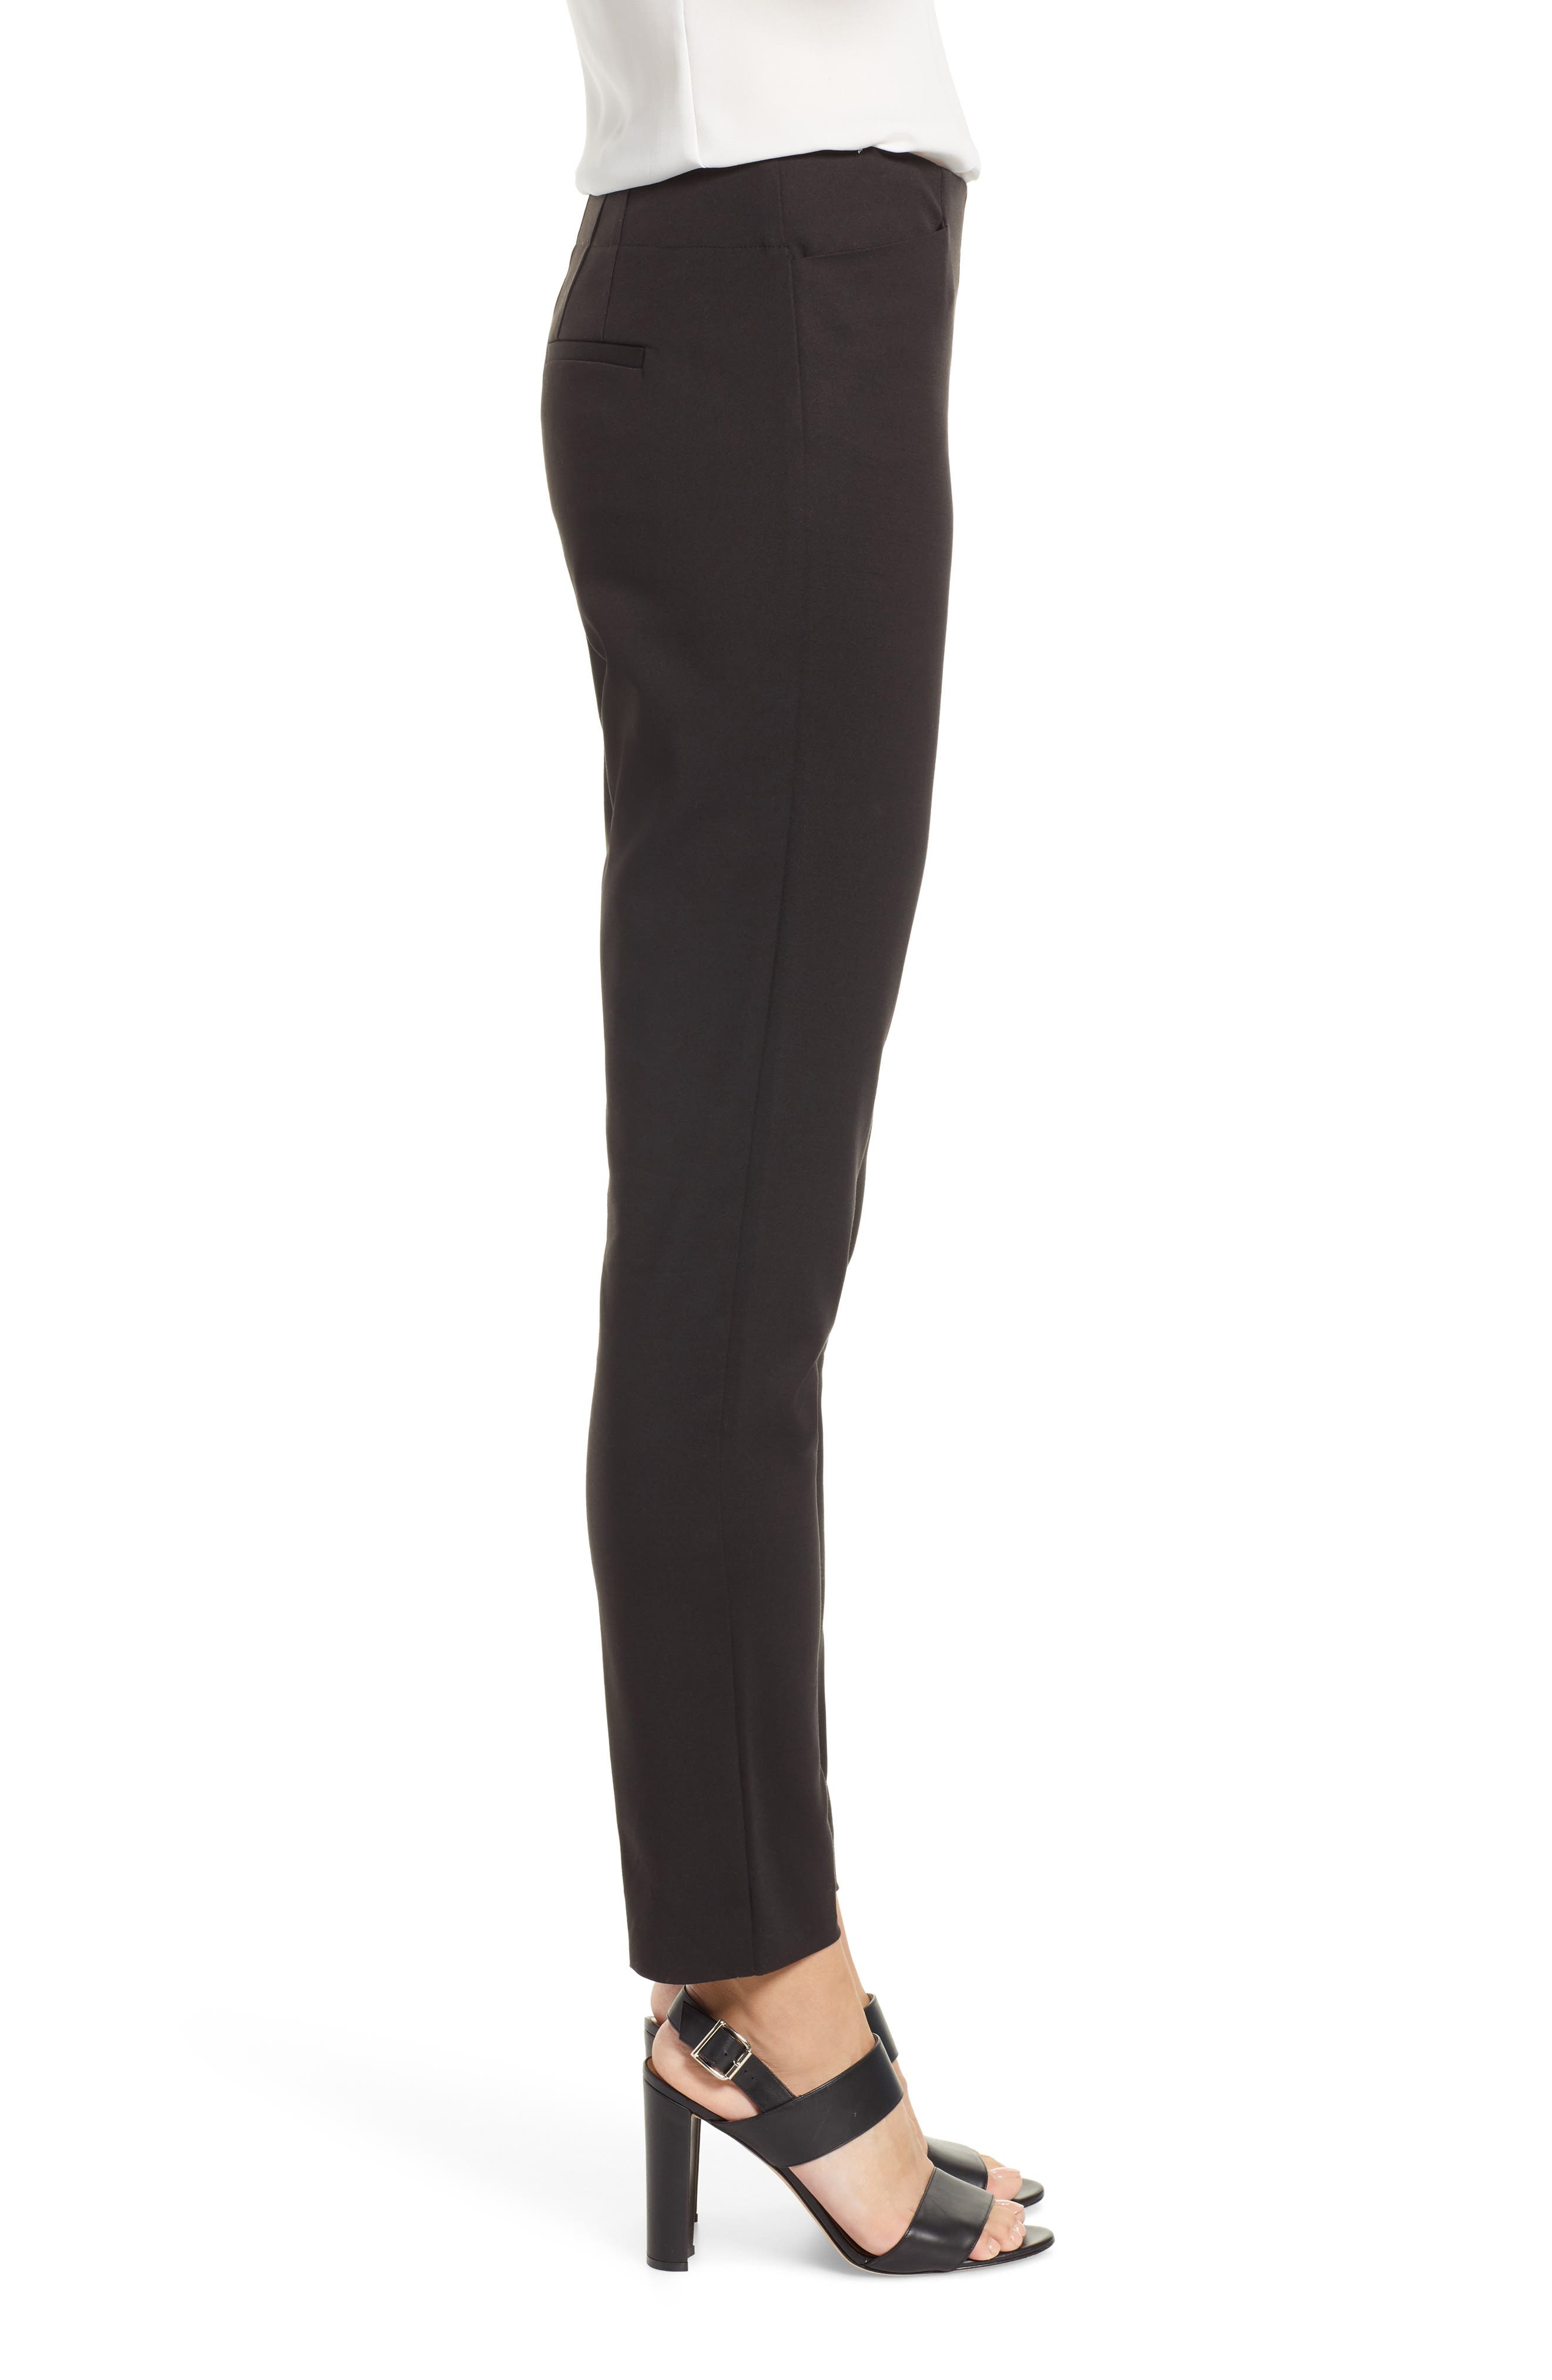 VINCE CAMUTO, Side Zip Stretch Cotton Blend Pants, Alternate thumbnail 4, color, RICH BLACK